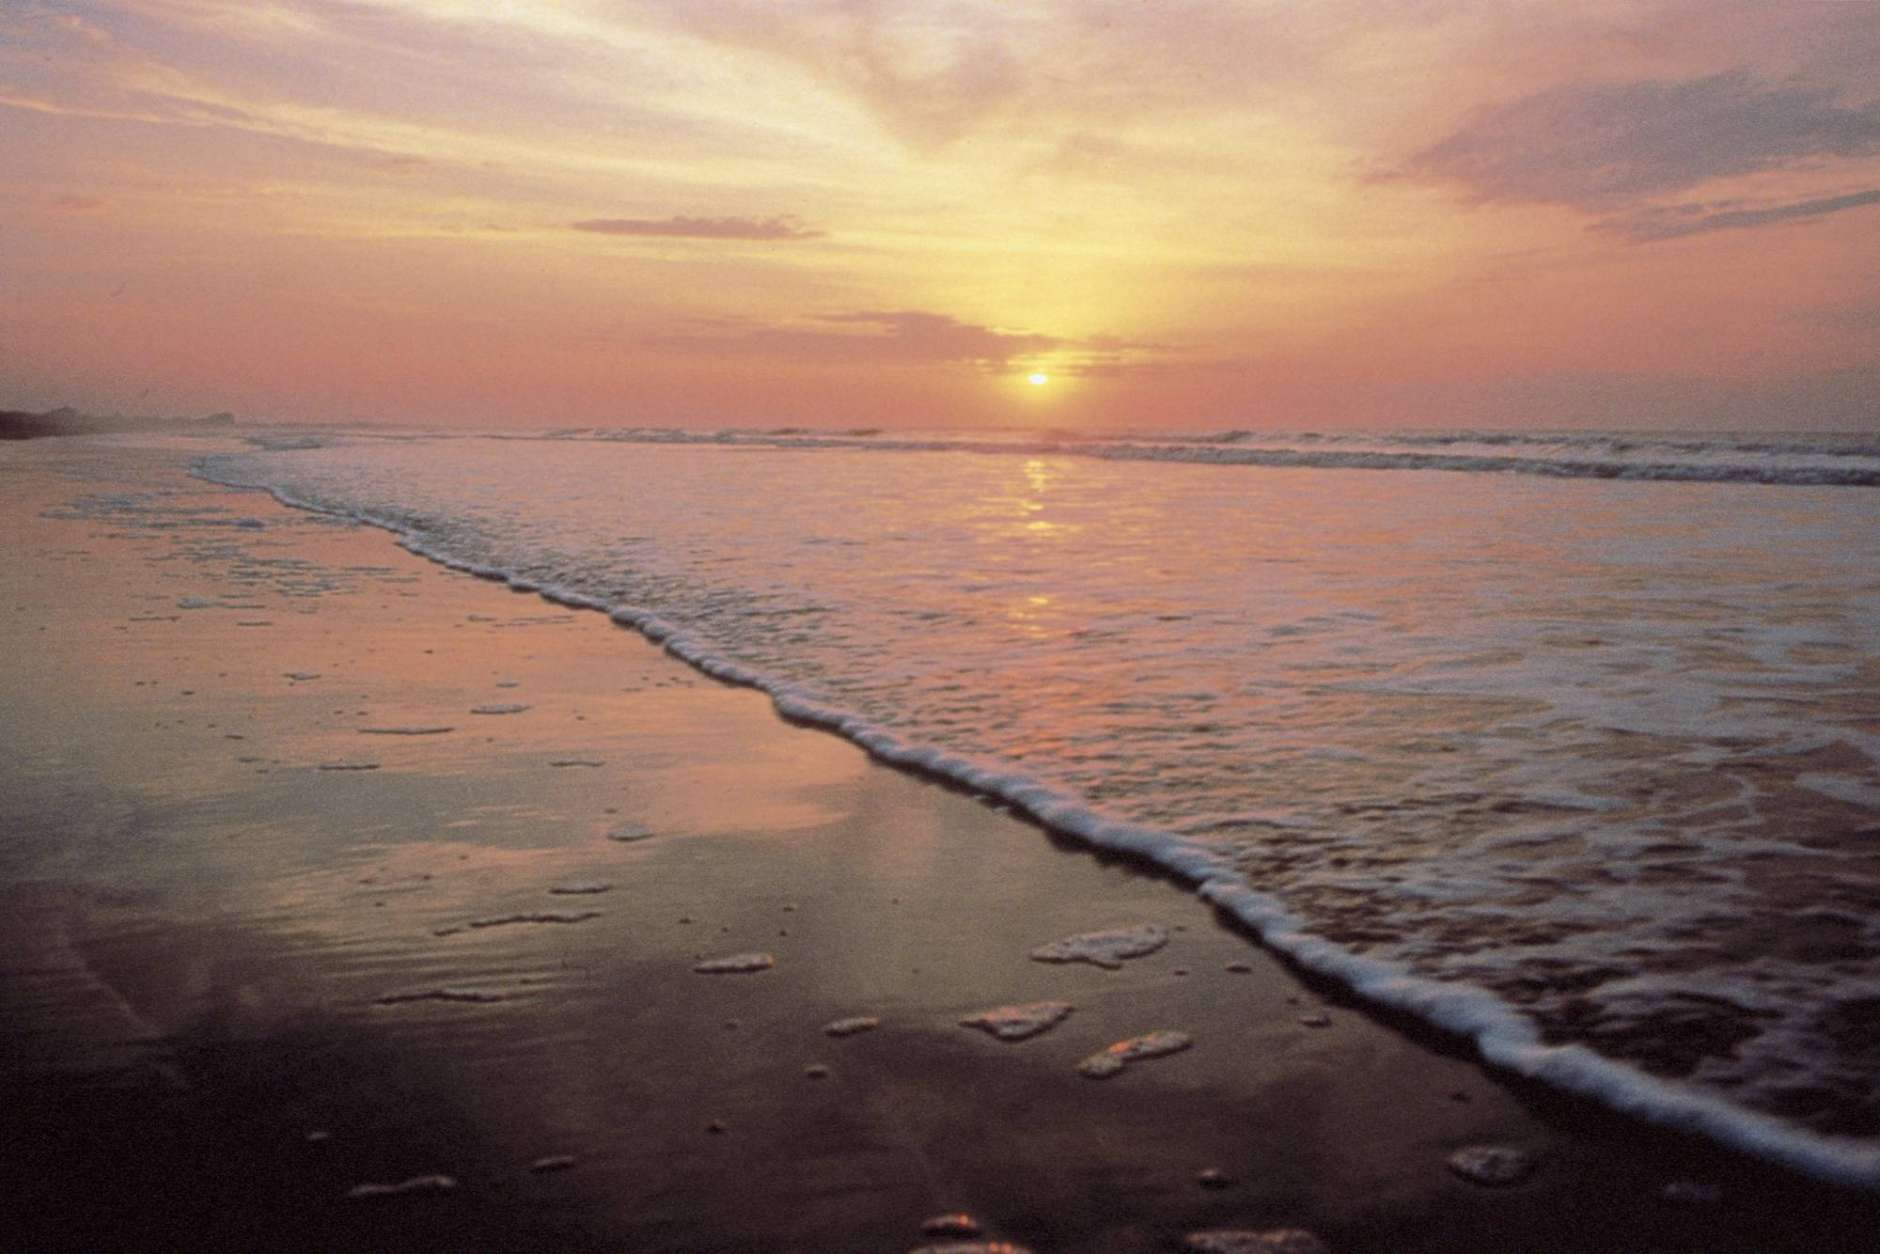 This undated photo provided by the Kiawah Island Golf Resort shows sunrise as seen from Beachwalker Park, Kiawah Island, South Carolina. Beachwalker is No. 10 on the list of best beaches for the summer of 2017 compiled by Stephen Leatherman, also known as Dr. Beach, a professor at Florida International University. (Kiawah Island Golf Resort via AP)